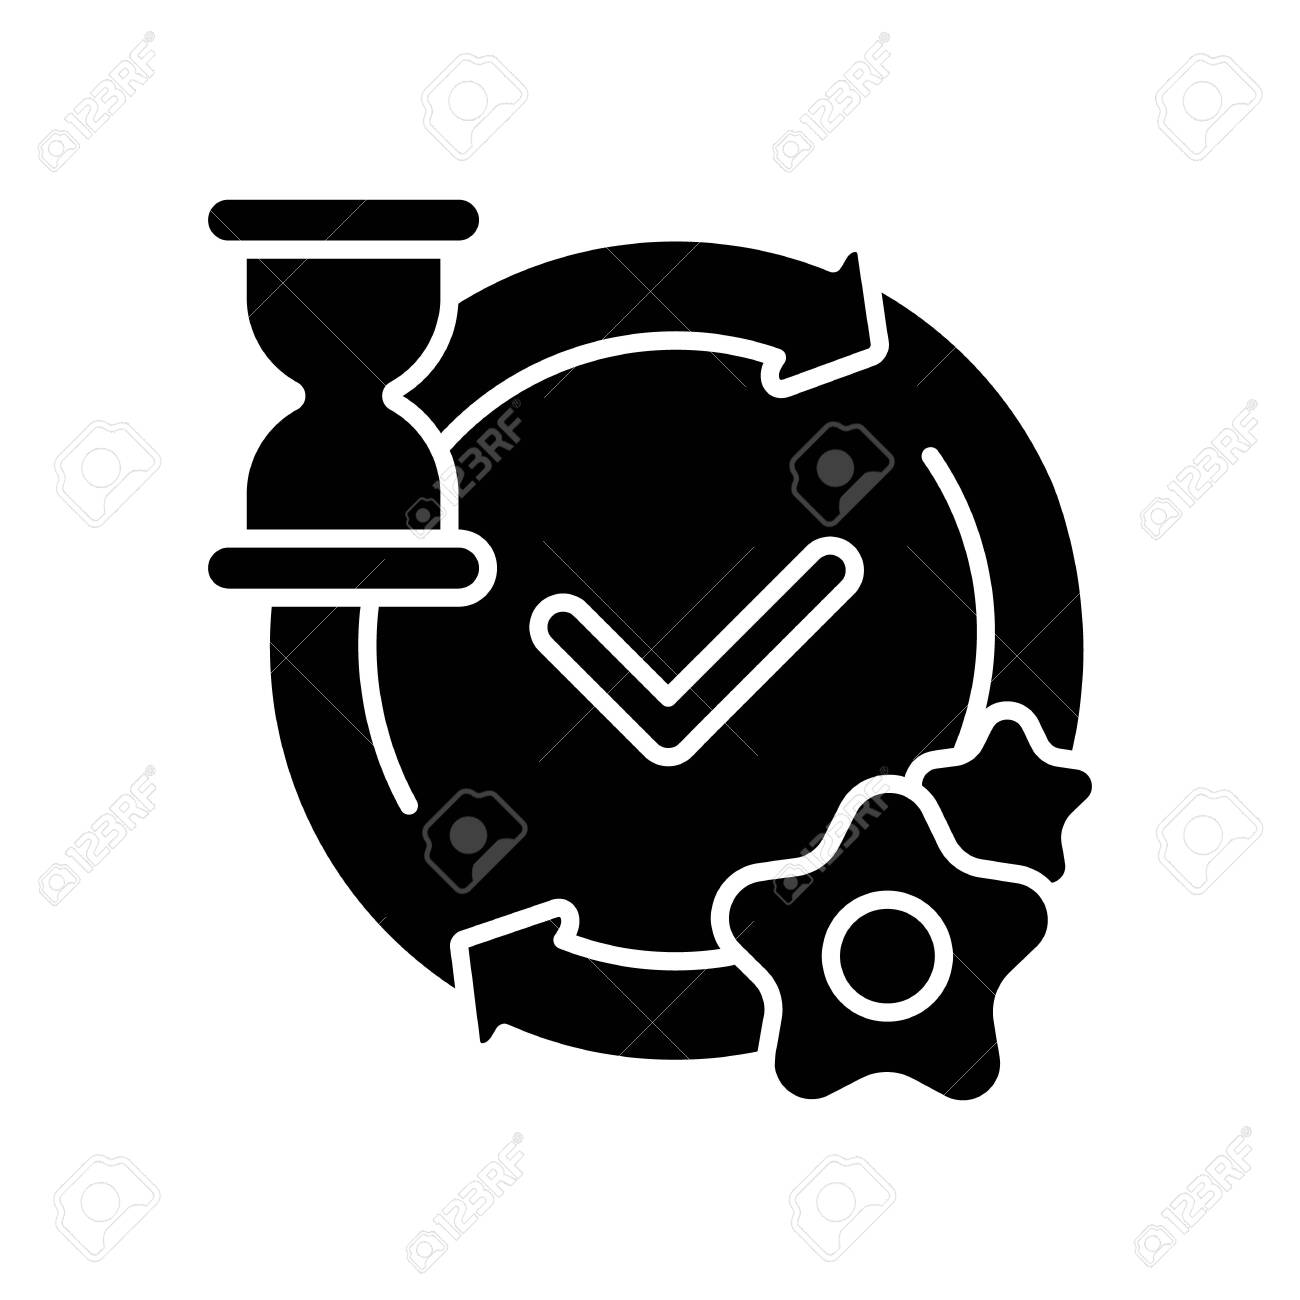 Processing Black Glyph Icon. Network Request Handling Notification... Royalty Free Cliparts, Vectors, And Stock Illustration. Image 153733576.